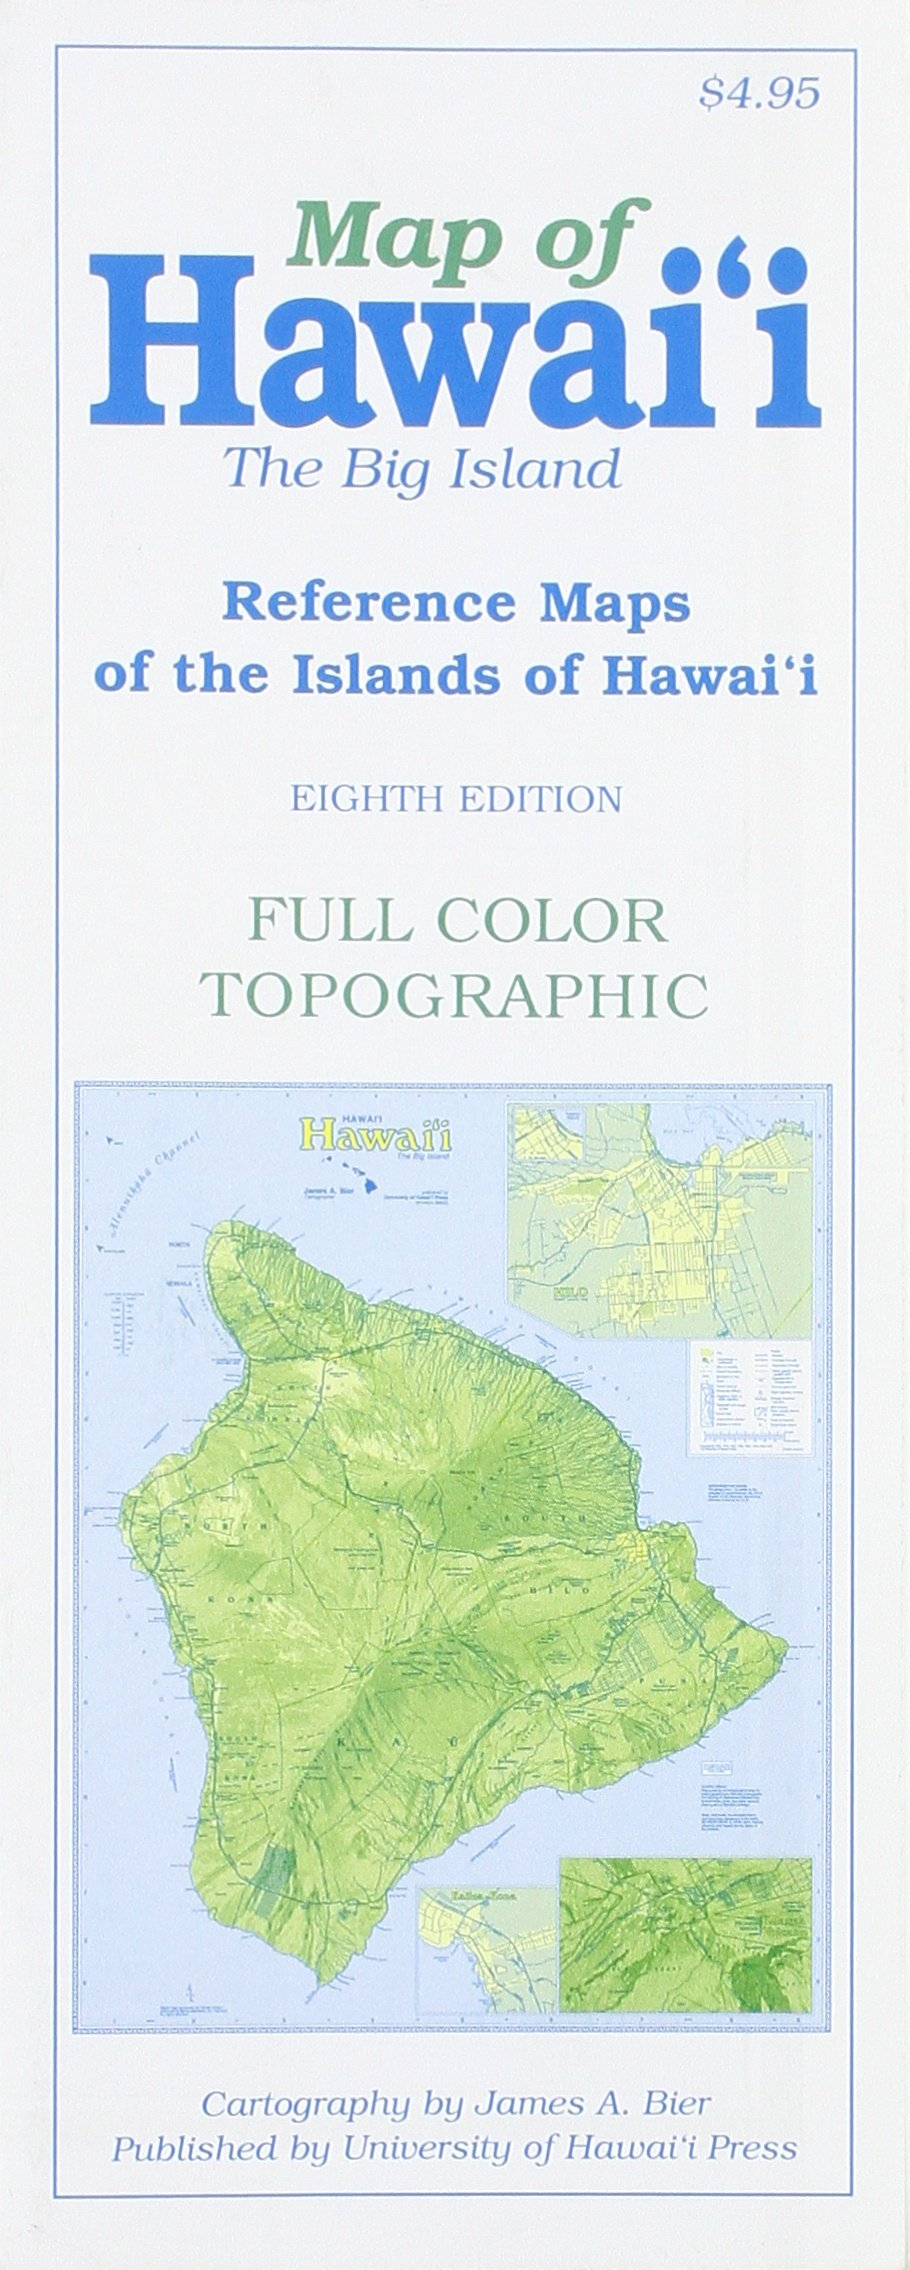 Map of Hawaii The Big Island James A Bier 9780824834395 Amazon